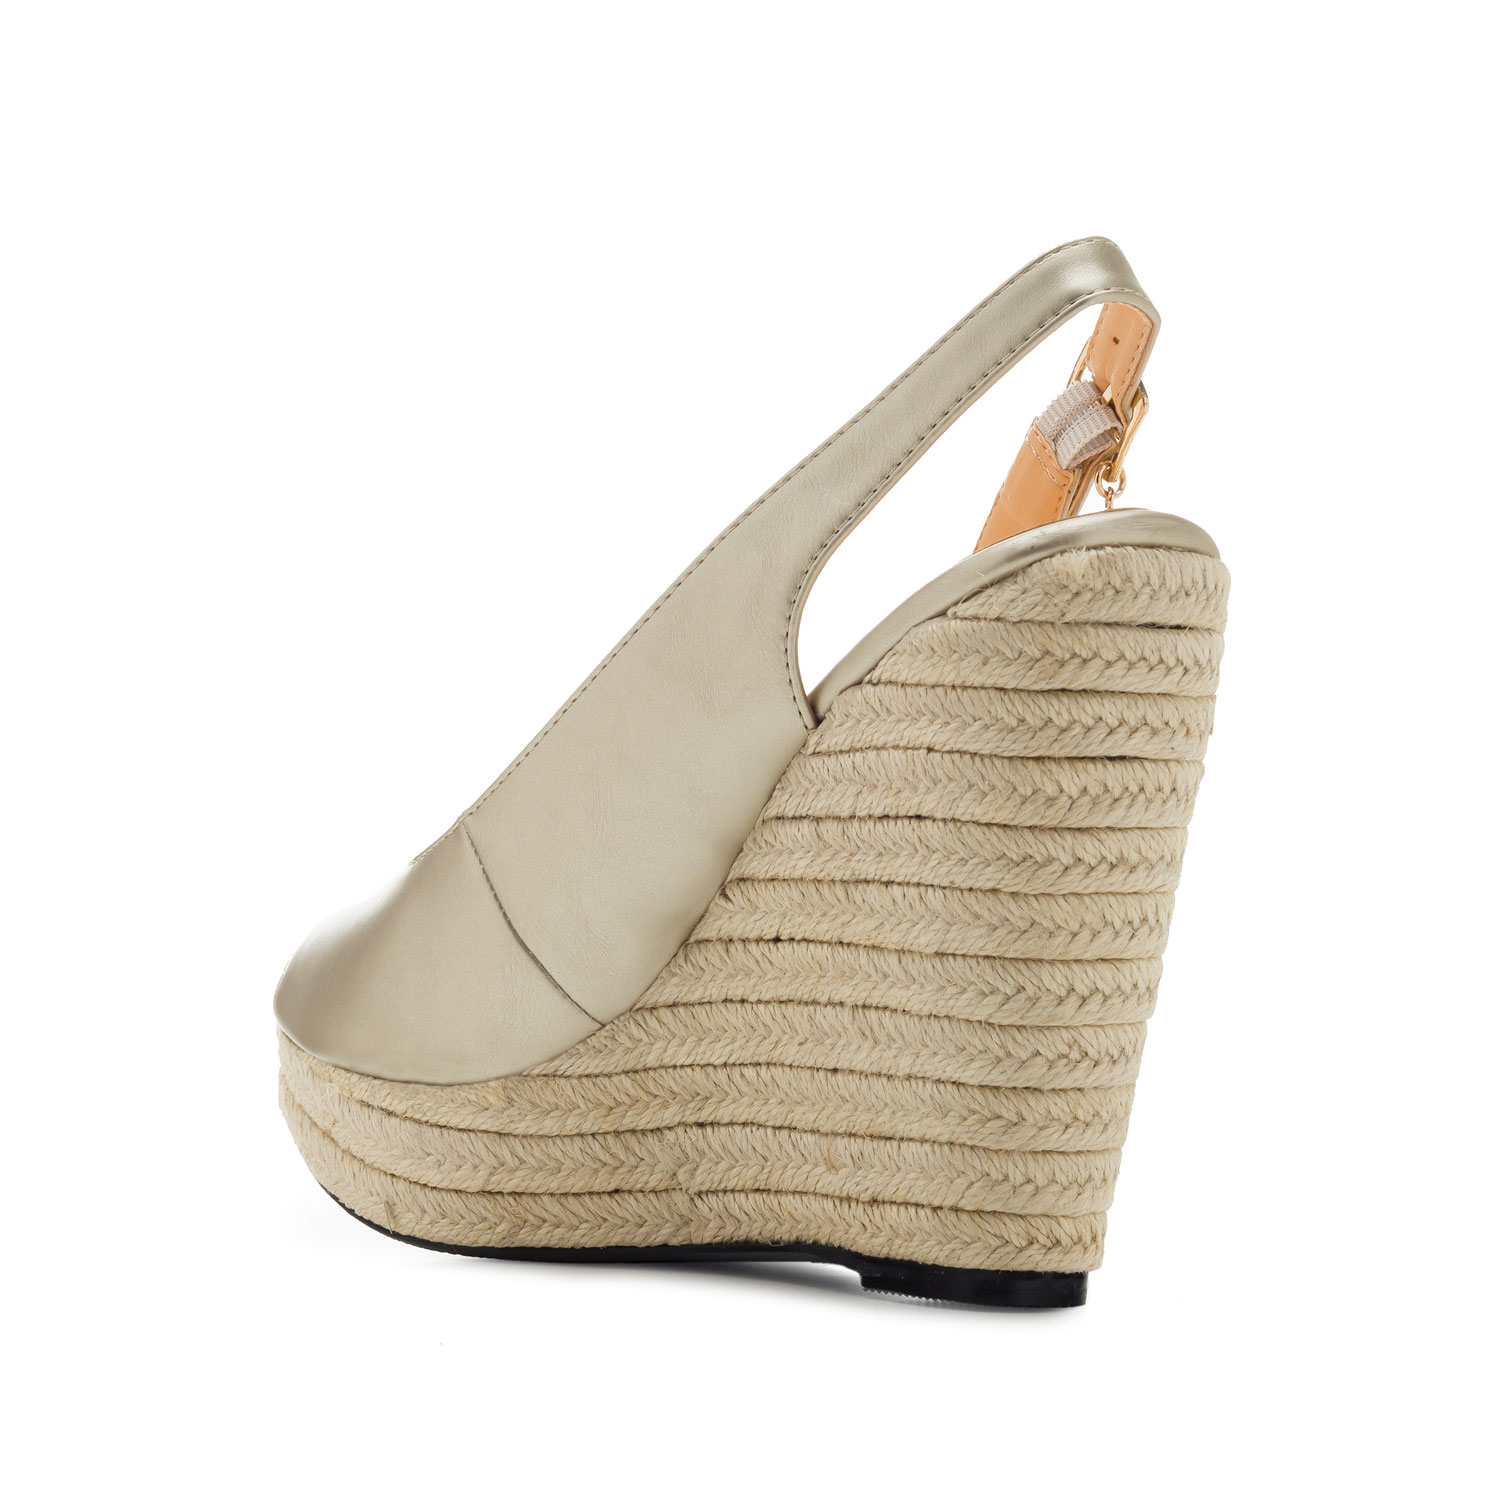 Jute Wedges in Gold faux Leather